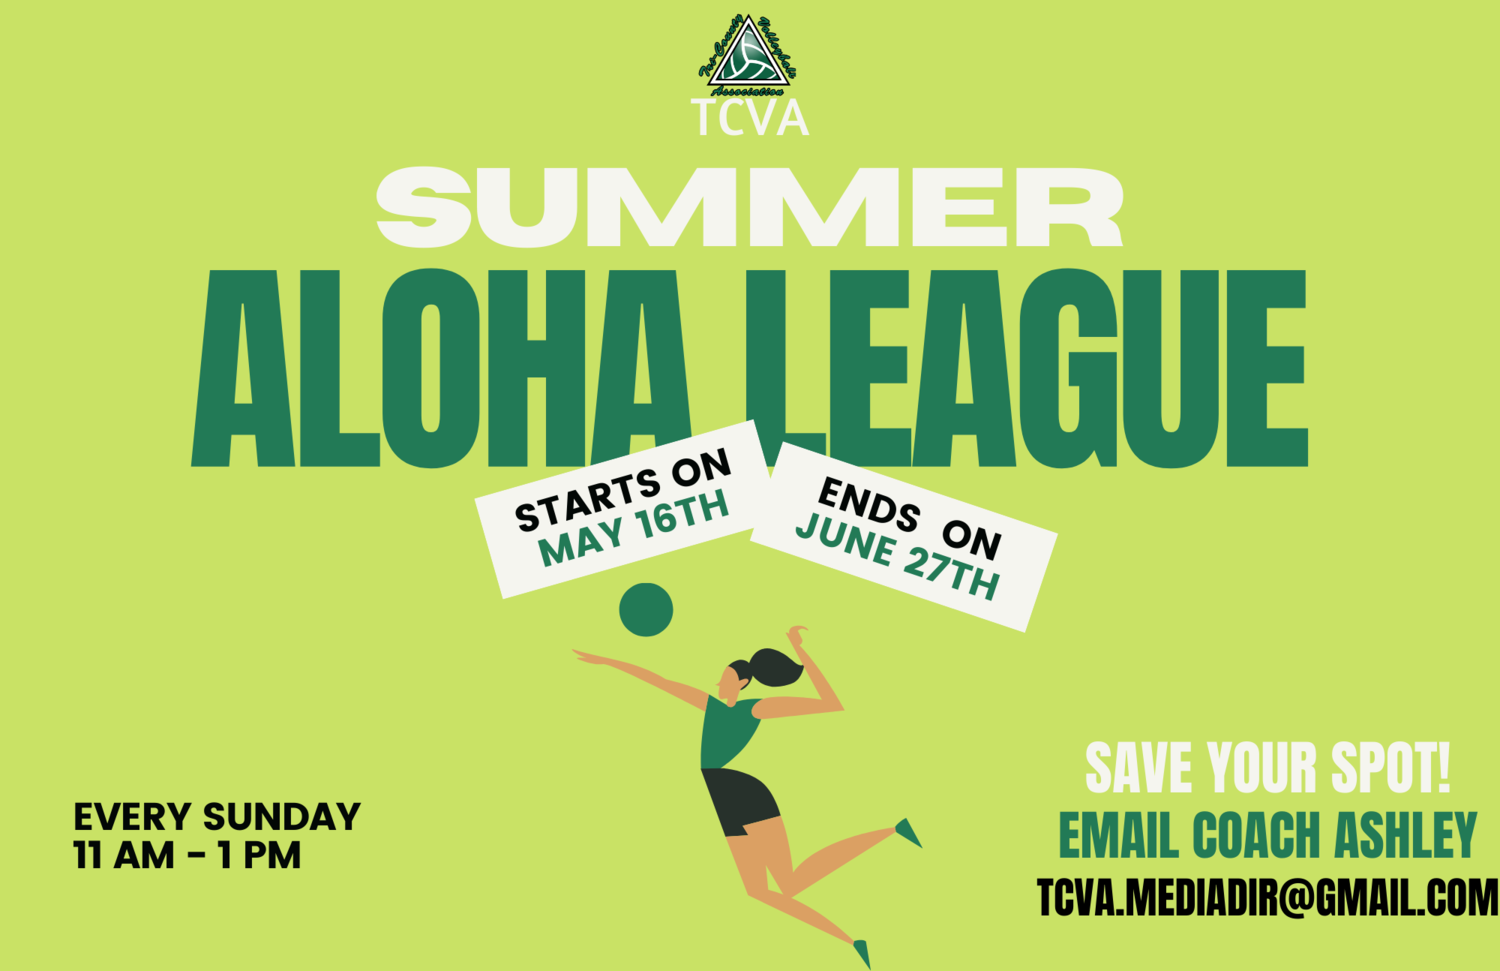 Summer Aloha League NEW ATHLETES